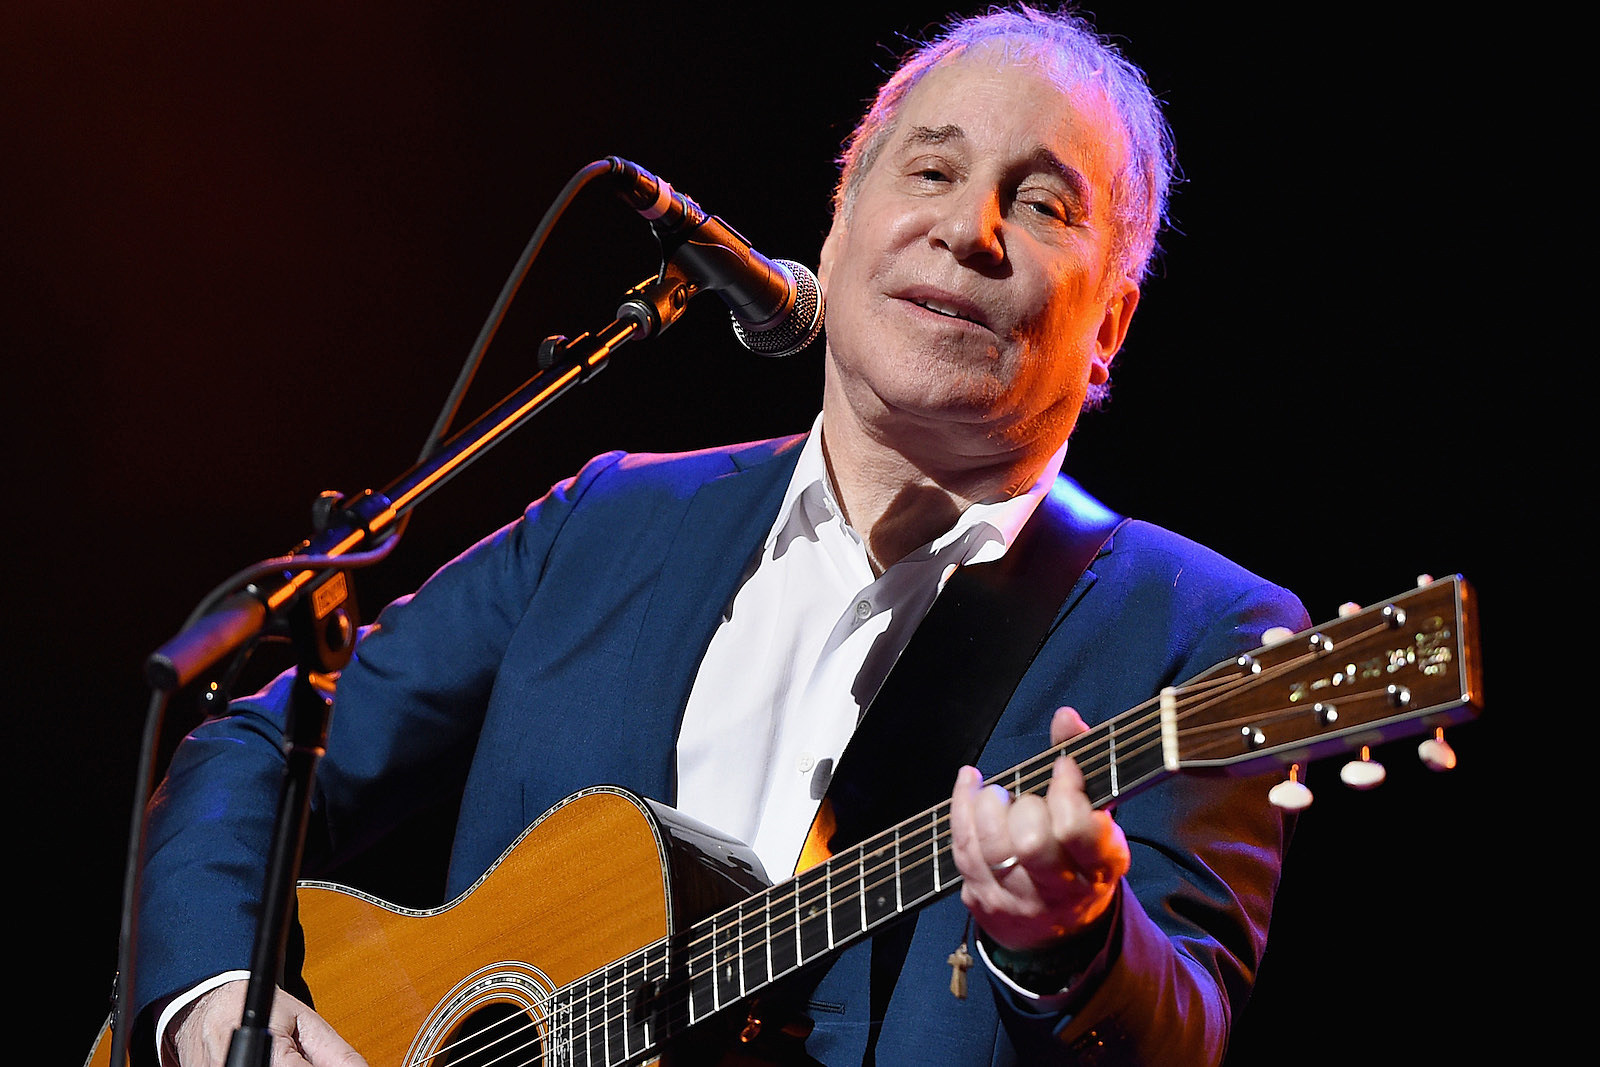 Paul Simon / Simon and Garfunkel Albums Ranked Worst to Best